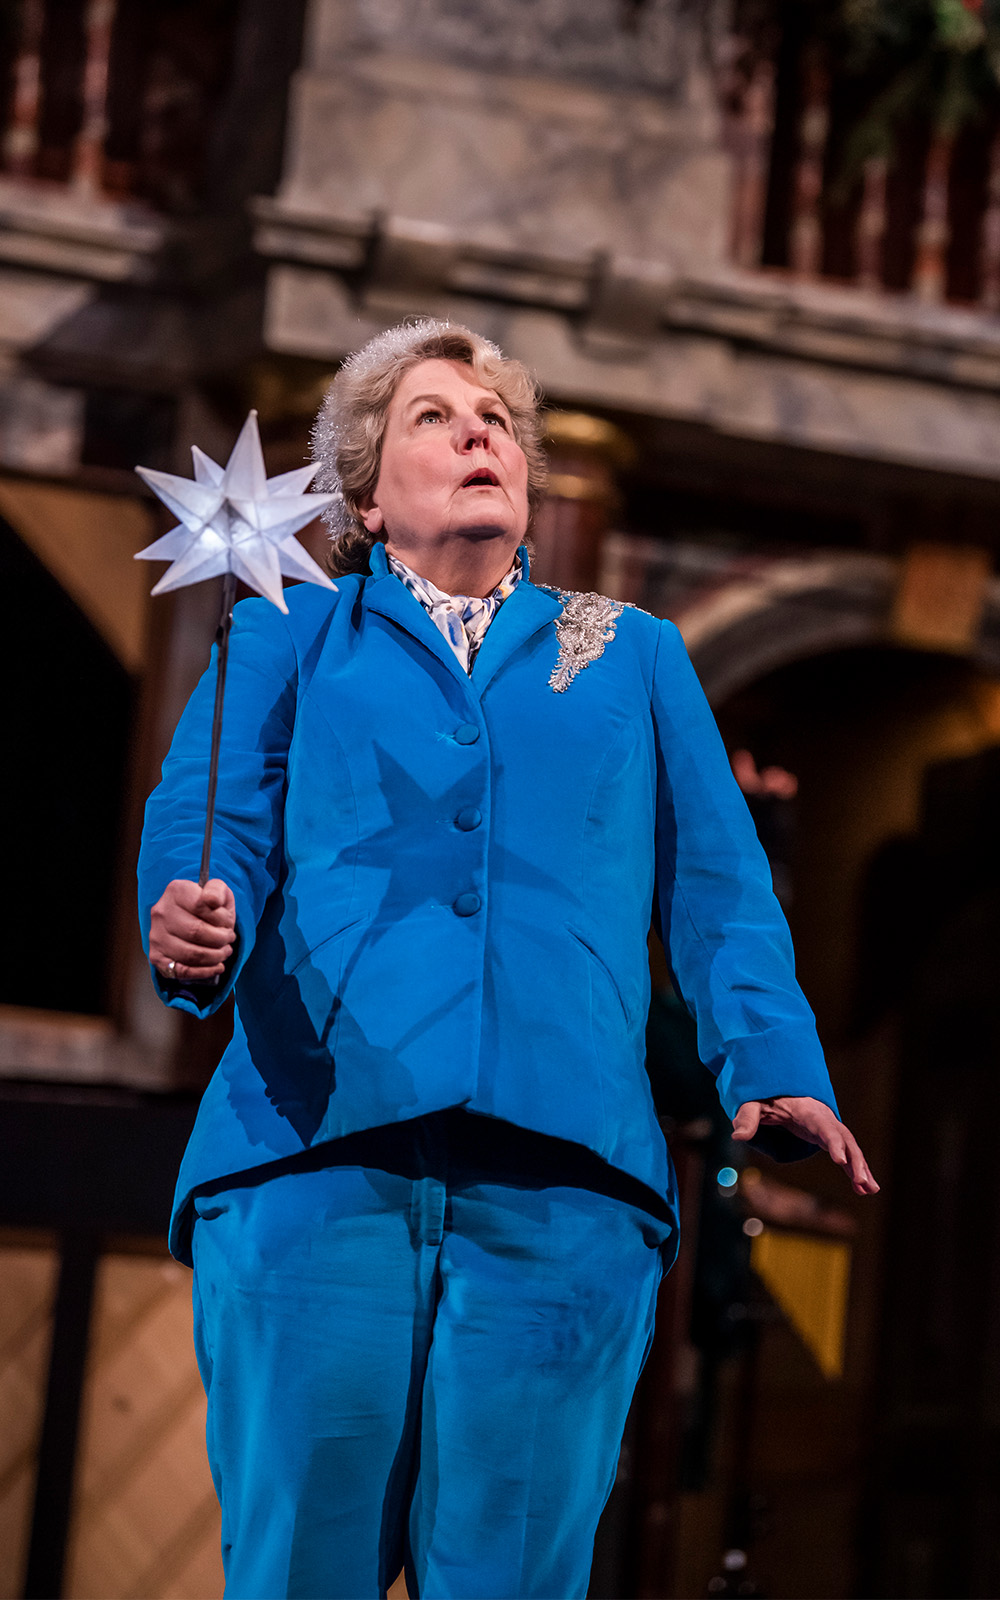 A woman in a blue suit on a stage